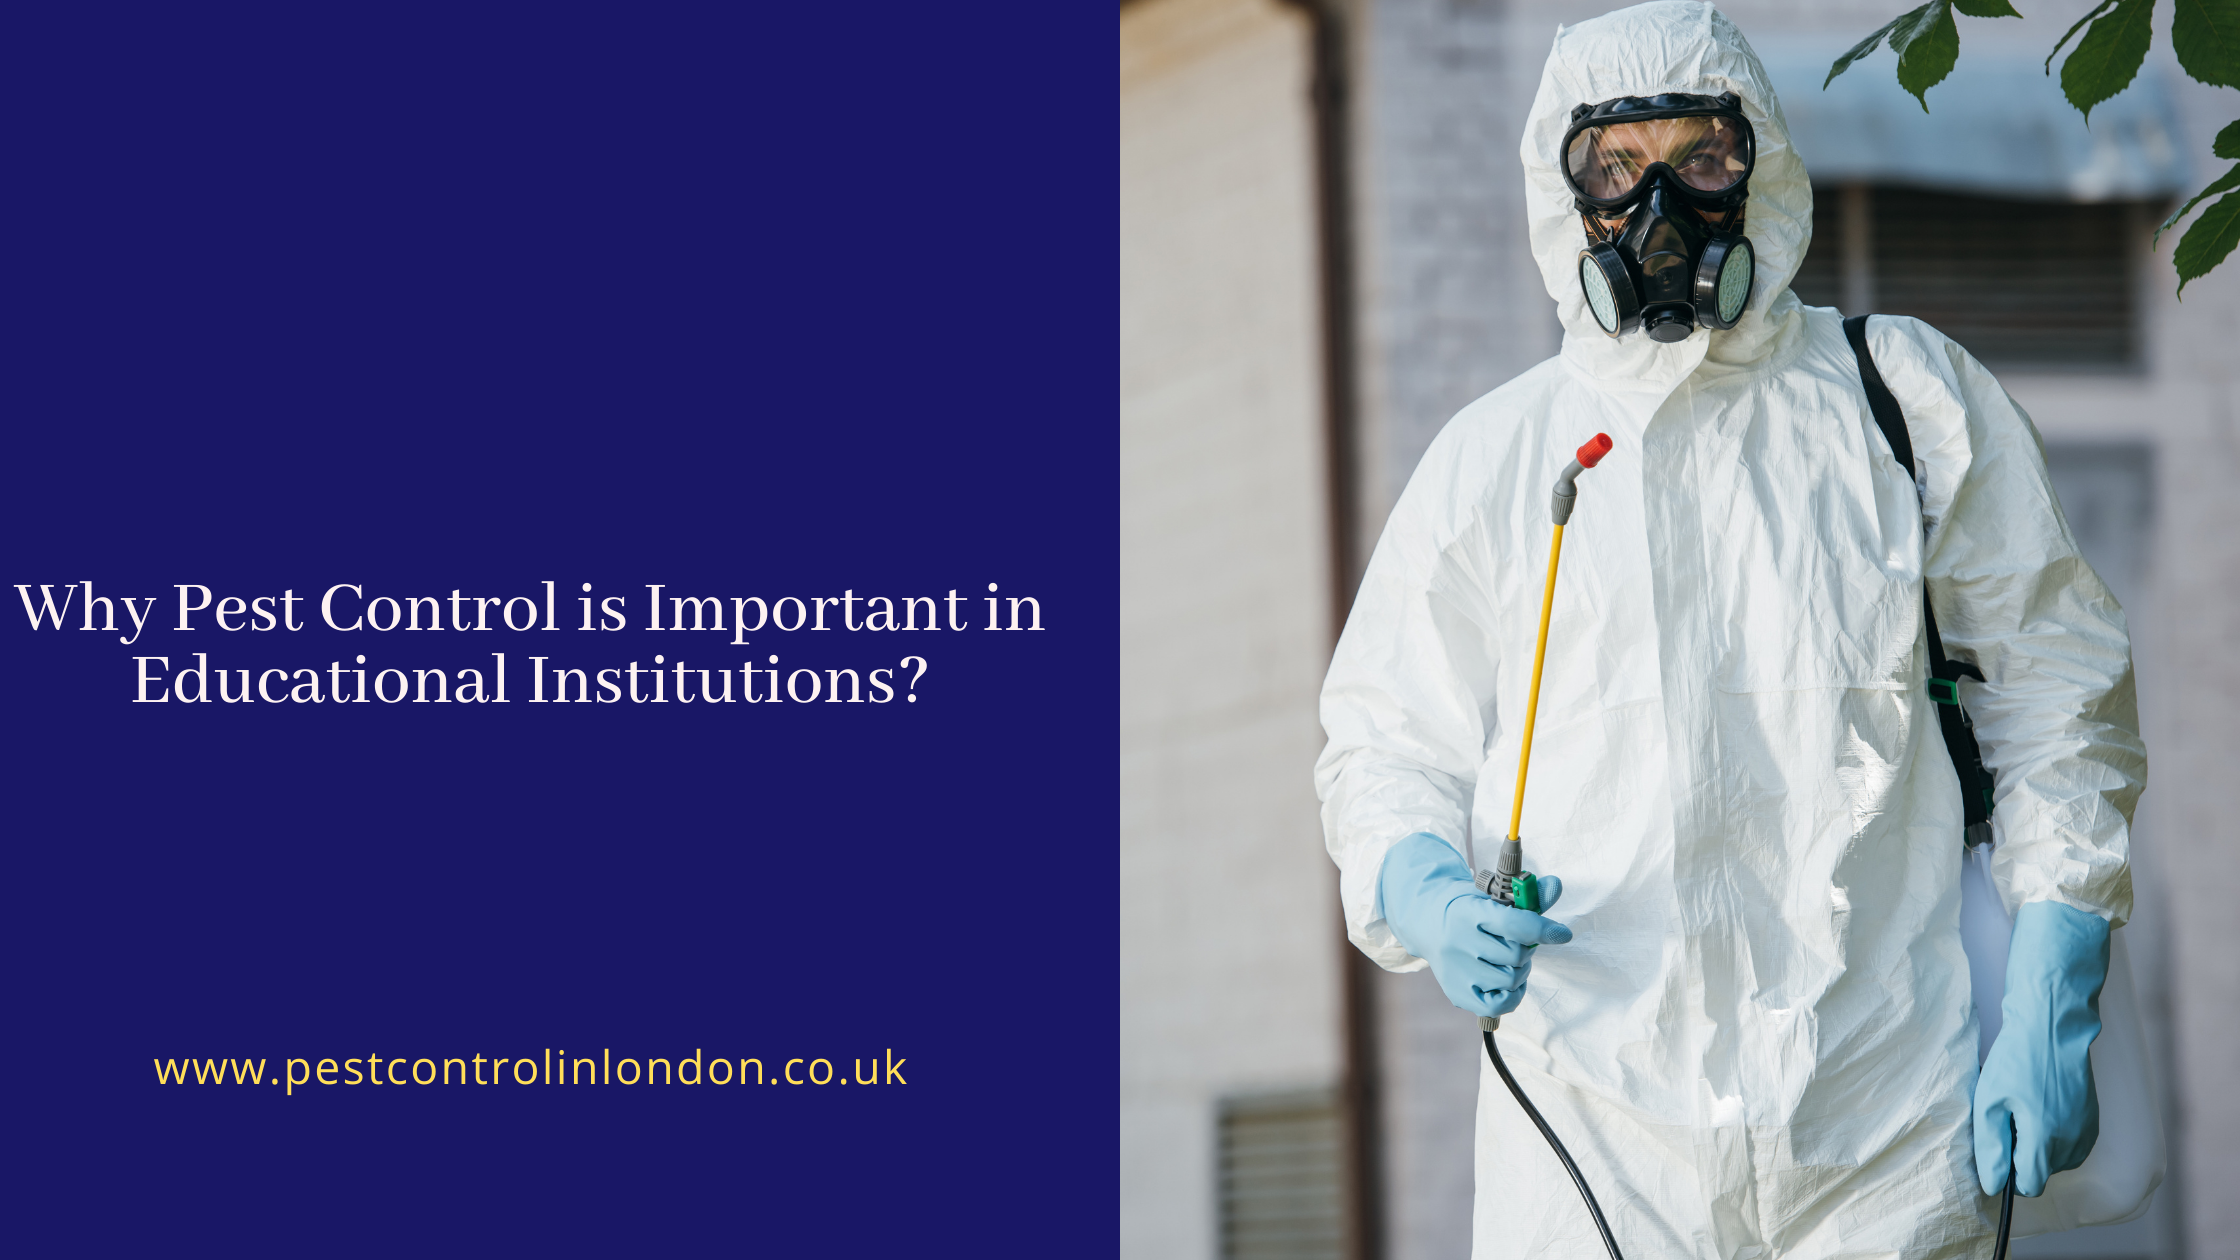 Why Pest Control is Important in Educational Institutions